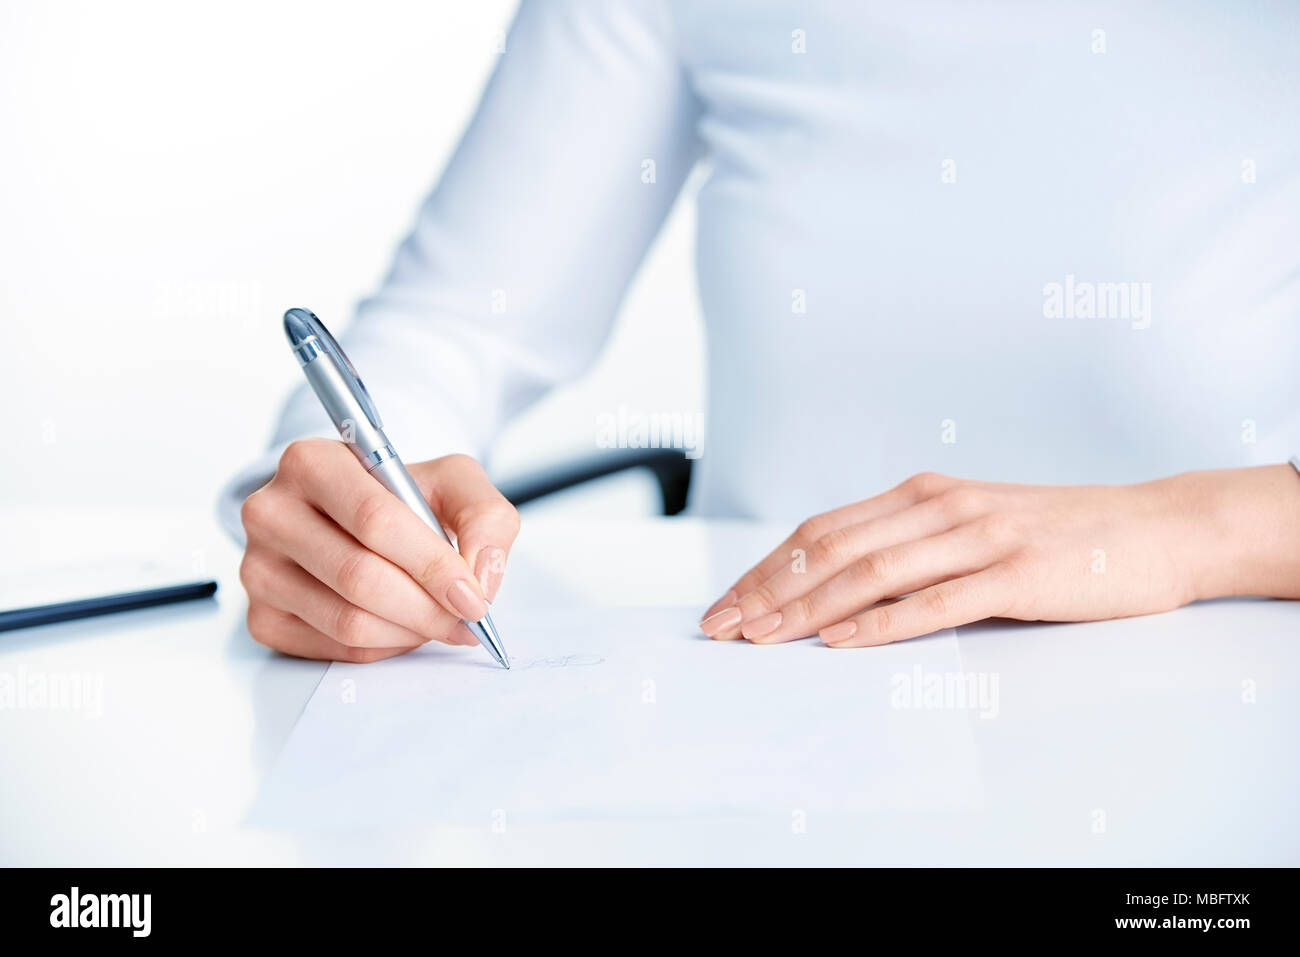 Close-up shot of businesswoman's hand holding pen and sign the paper while sitting at office desk. Stock Photo